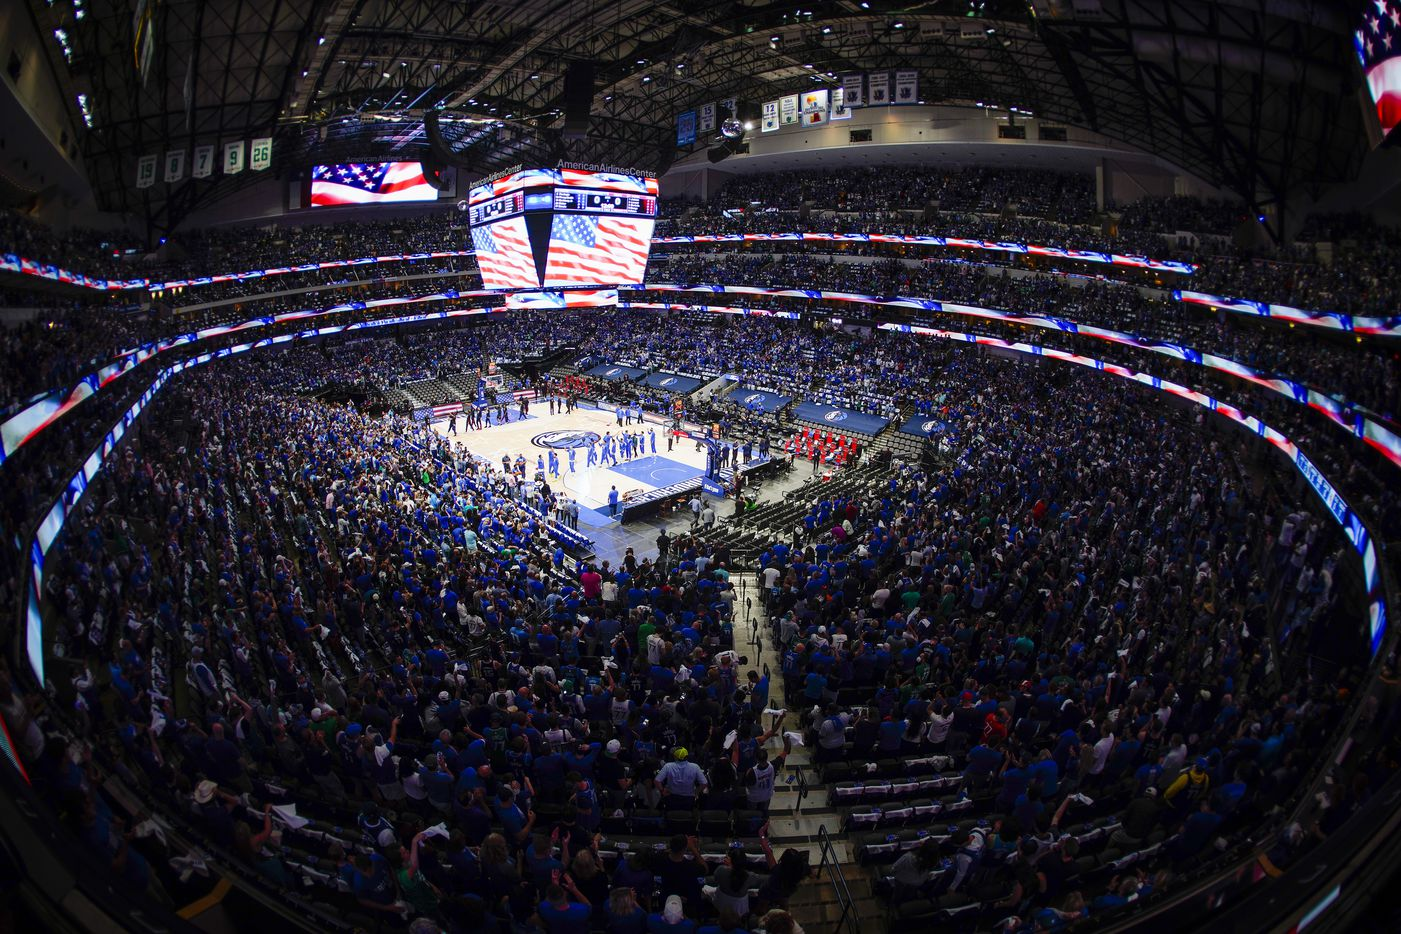 Fans and players stand for the national anthem before an NBA playoff basketball game between the Dallas Mavericks and the LA Clippers at American Airlines Center on Sunday, May 30, 2021, in Dallas.